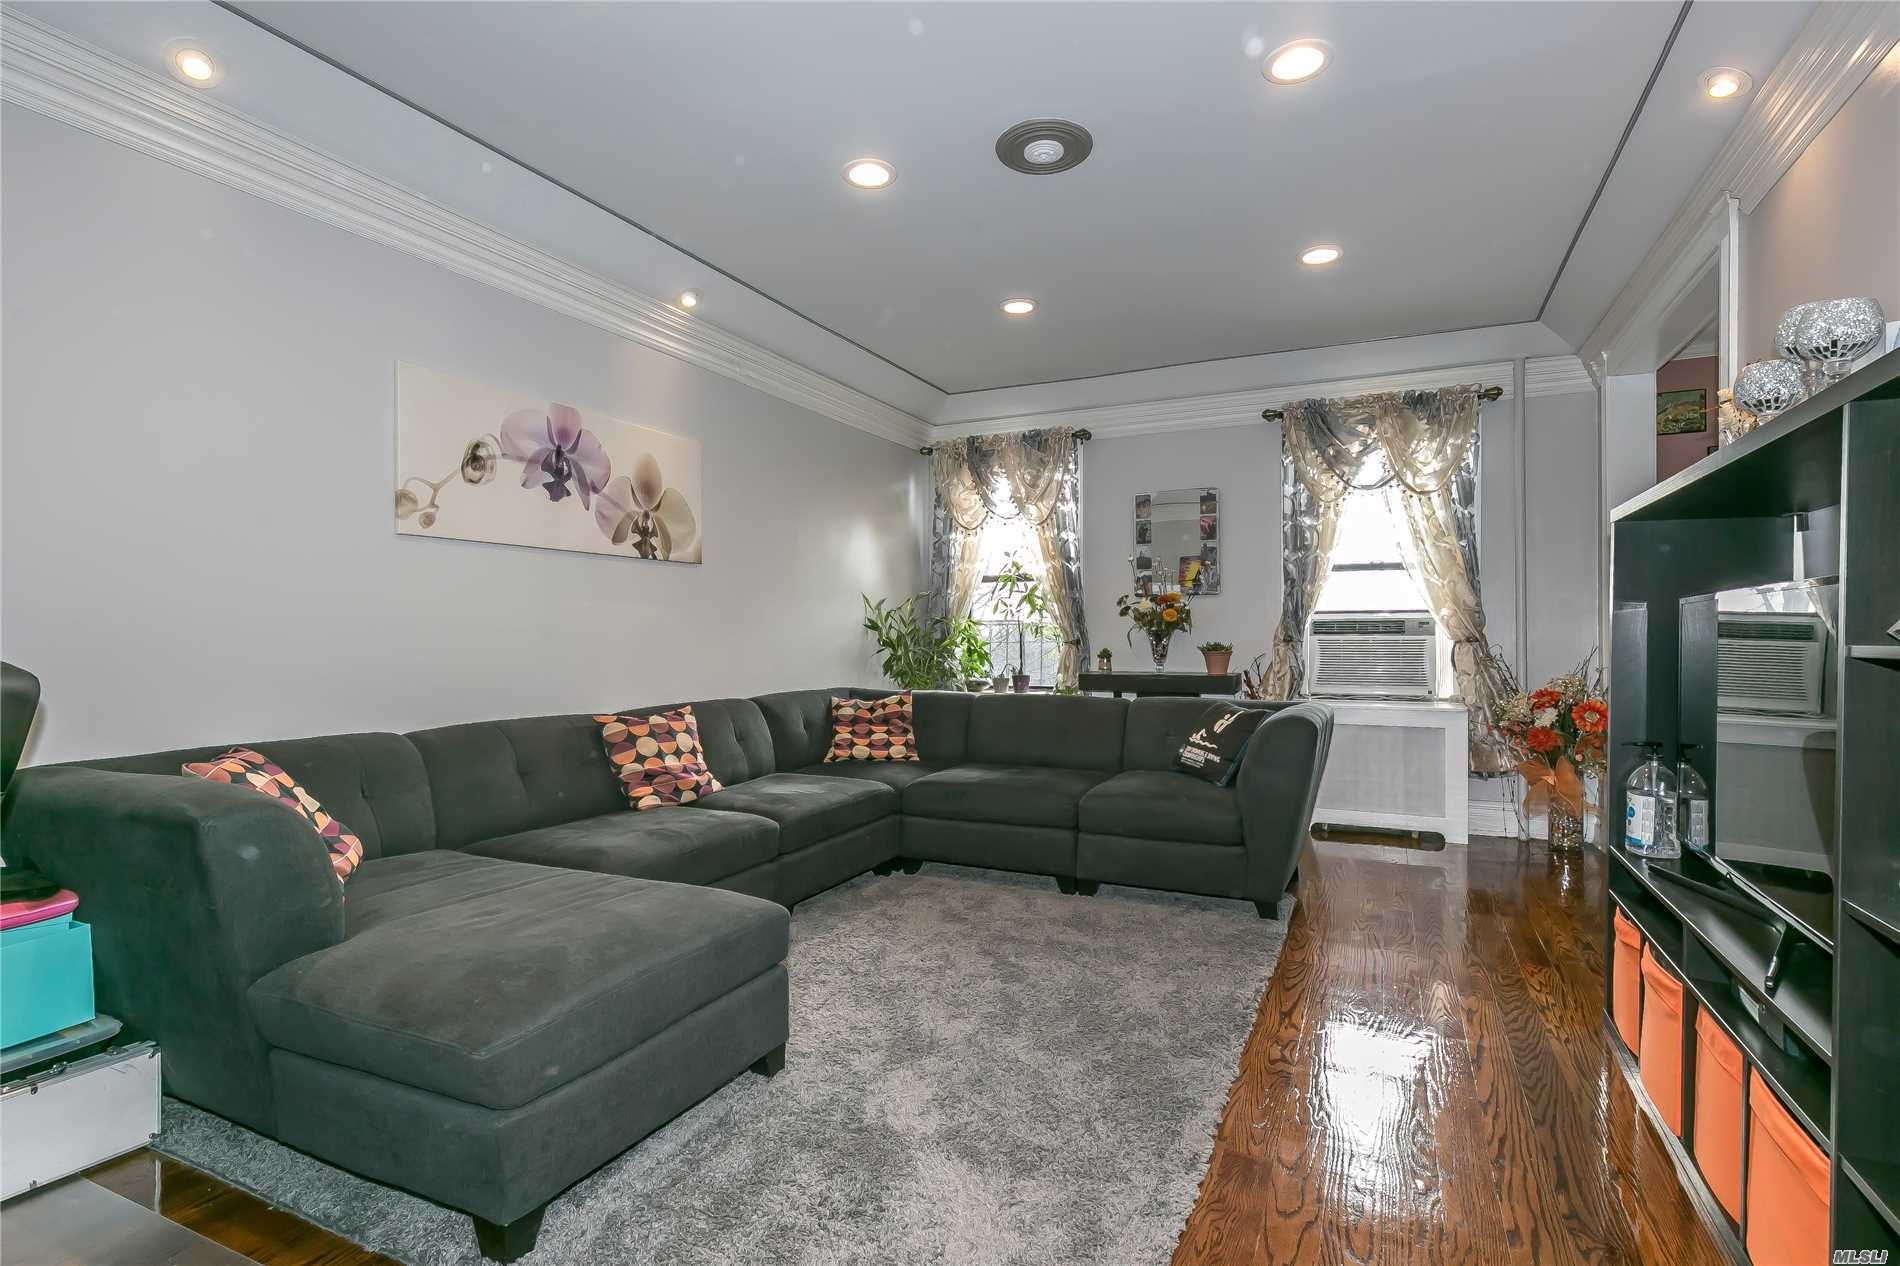 Spectacular, Bright and Spacious 1 Br/1 Bth , Front Facing Pre-War Coop Apt With Beautiful Garden View. Washer-Dryer in Unit! 12 Feet High Ceilings With Double Moldings, Elegant Oversized Bedroom Custom Eat-In Kitchen With Top Of The Line Stainless Steel Appliances & Granite Counter Tops, Beautiful Italian Marble Bath w/Window, Immediate Out. Parking, Close Proximity To LIRR With Direct Line To Penn Station, Shopping Center & Restaurants. Enjoy Access To Parkwood Pool, Tennis Ct, GN South SD